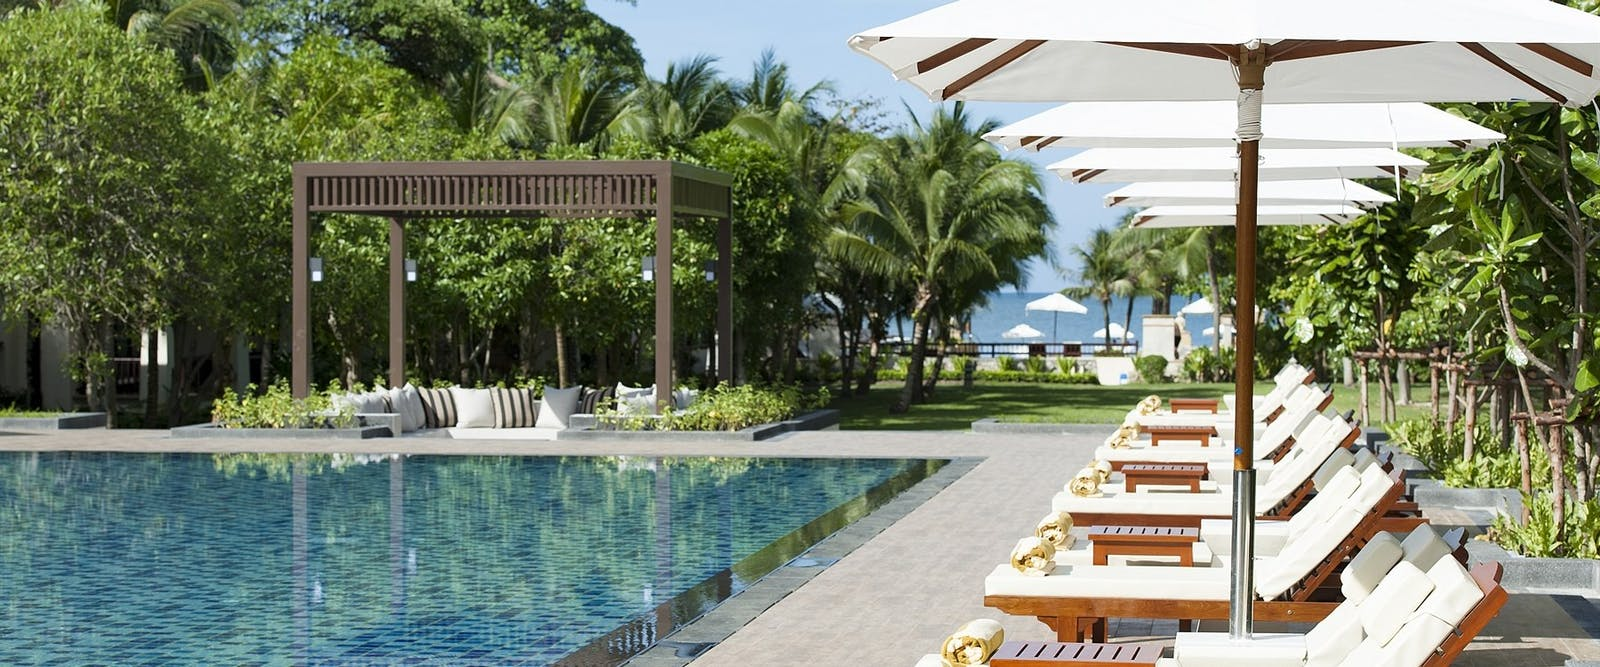 Swimming Pool at Layana Resort & Spa Koh Lanta, Thailand